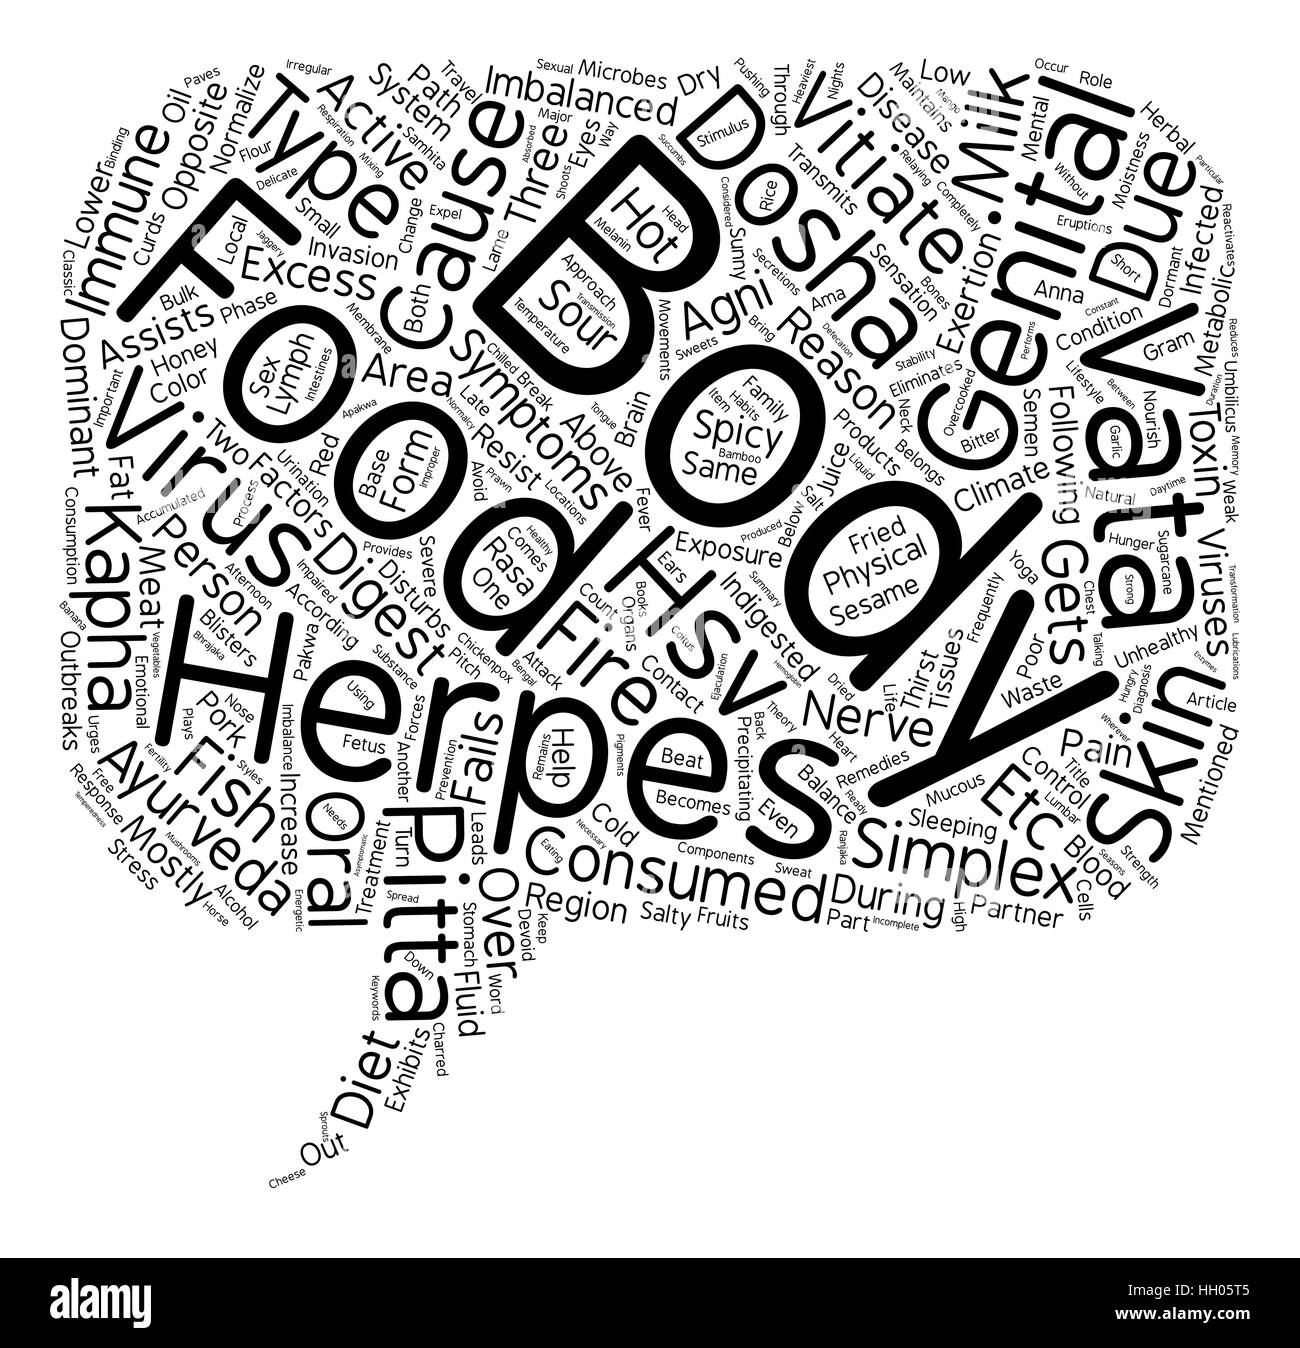 Herpes Black and White Stock Photos & Images - Alamy